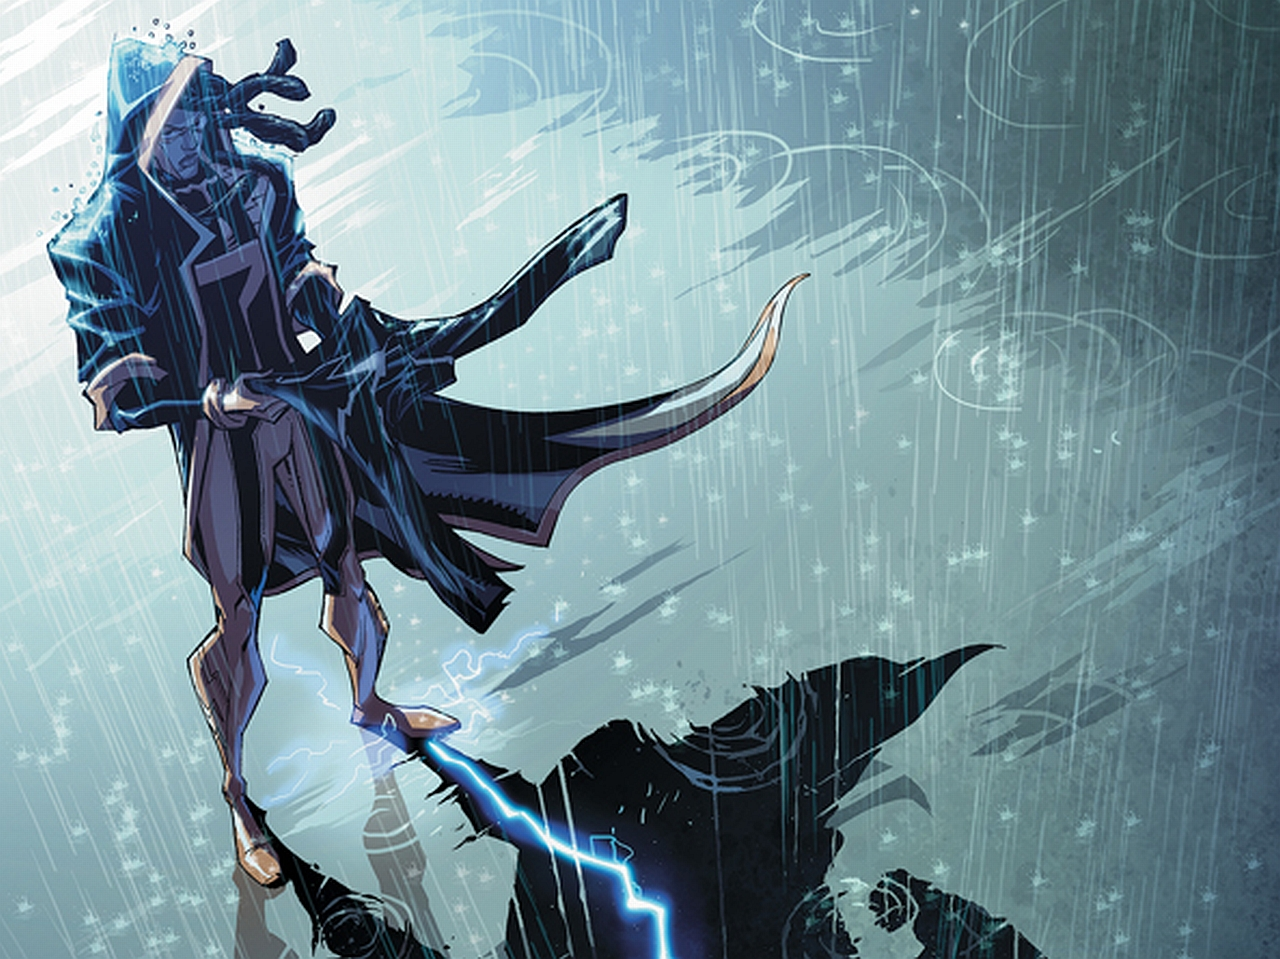 Static Shock Computer Wallpapers Desktop Backgrounds 1280x959 ID 1280x959